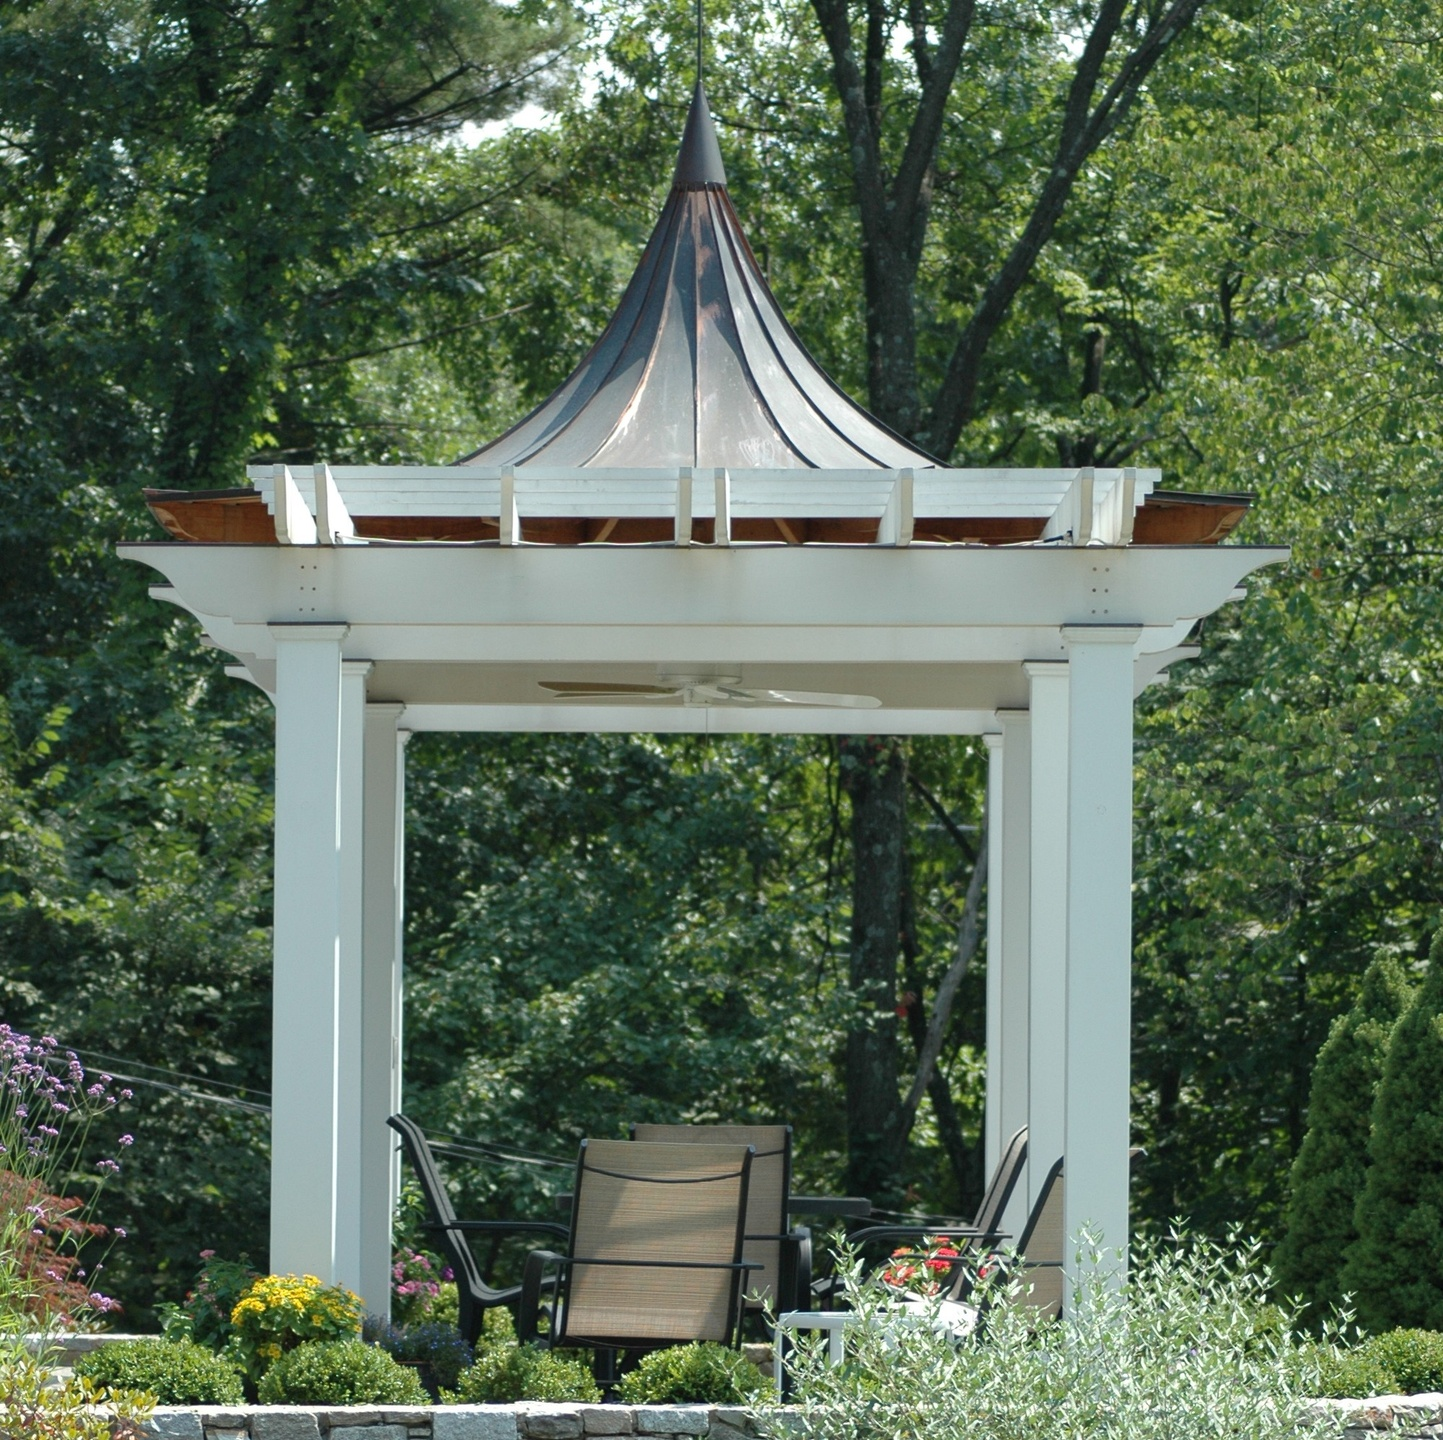 Pergola pavilion with a  standing seam Copper roof, with curved roof lines